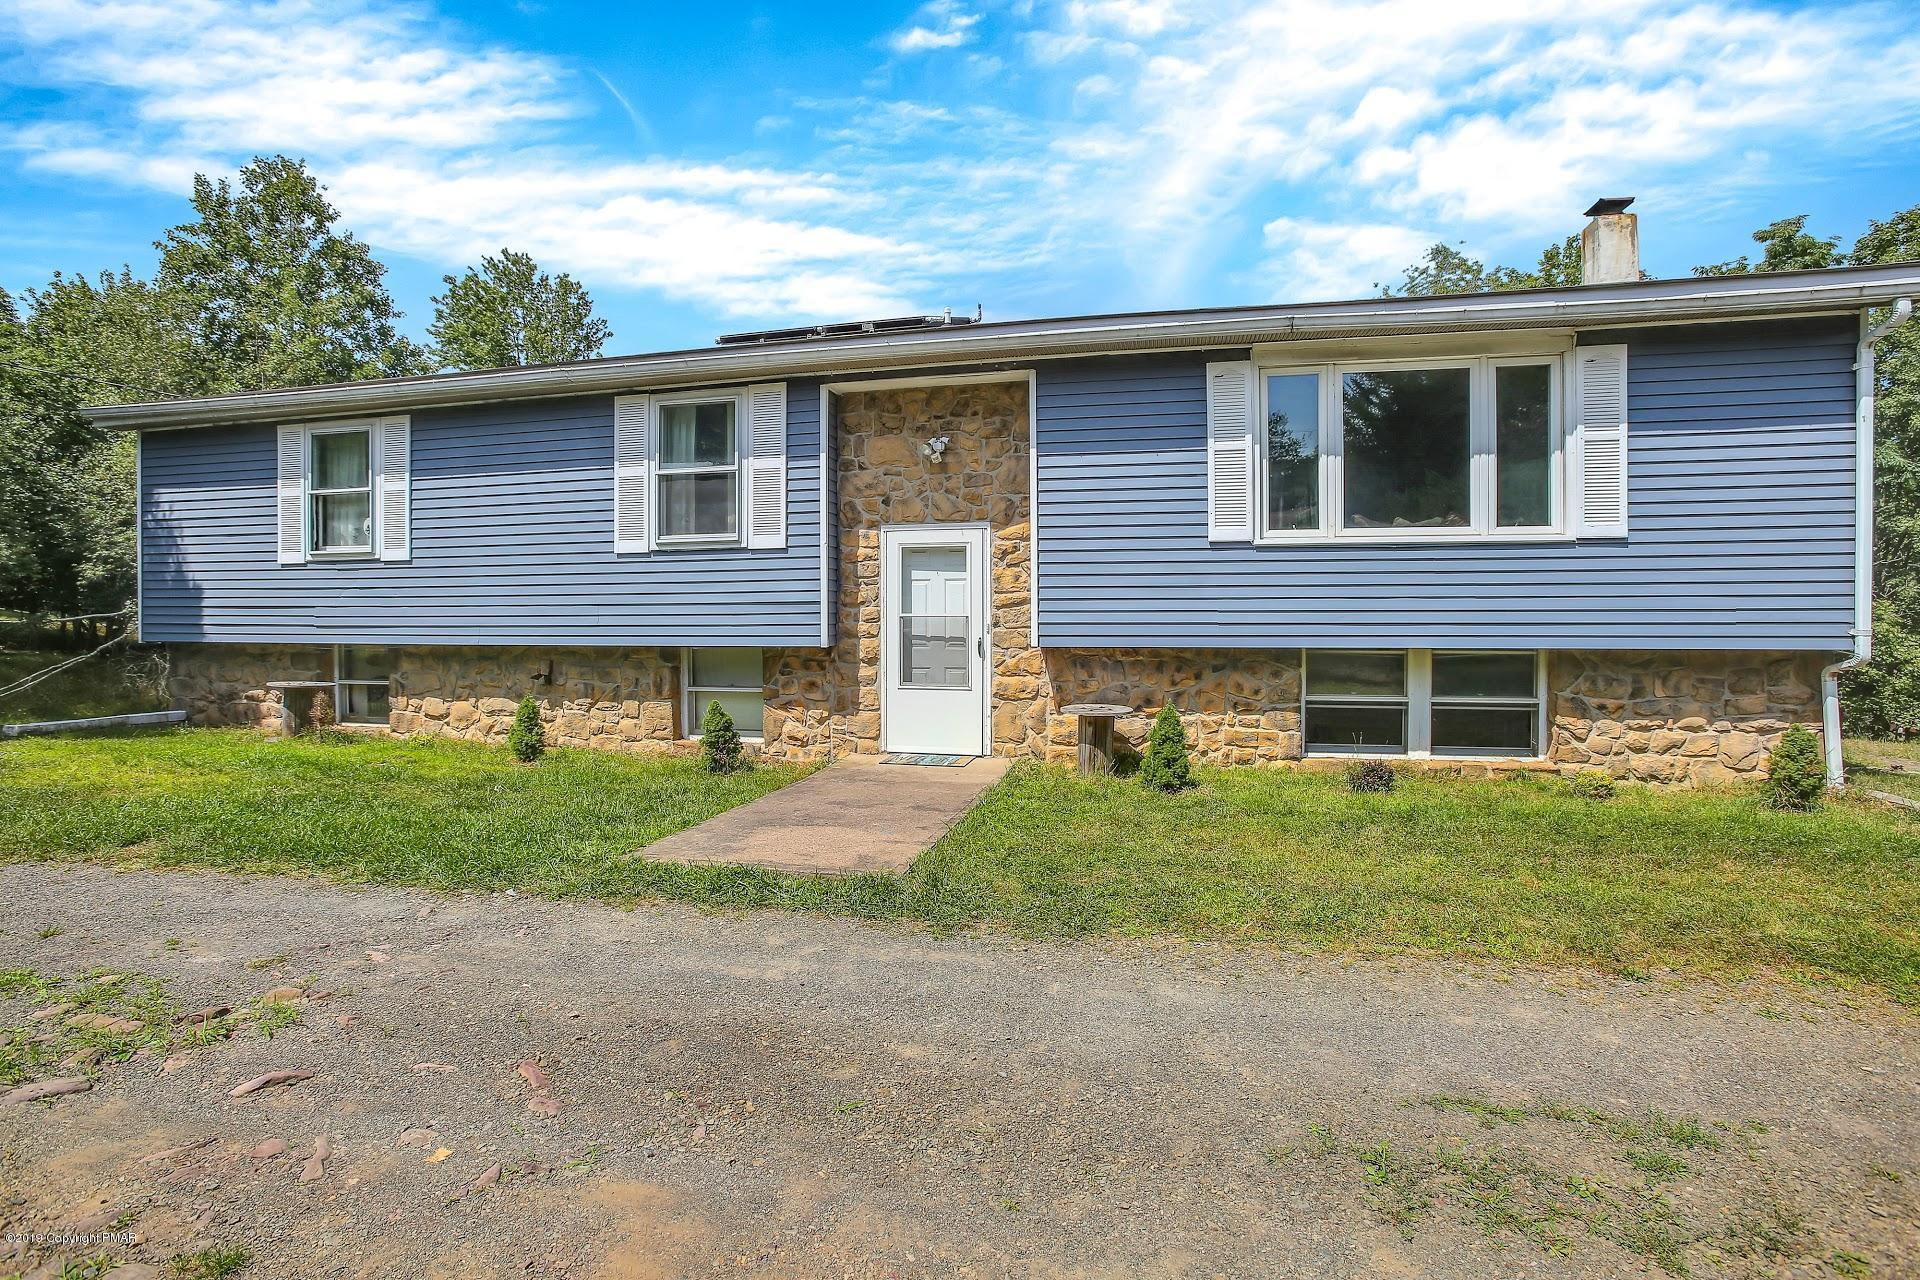 215 Fawn Ln, Albrightsville, PA 18210